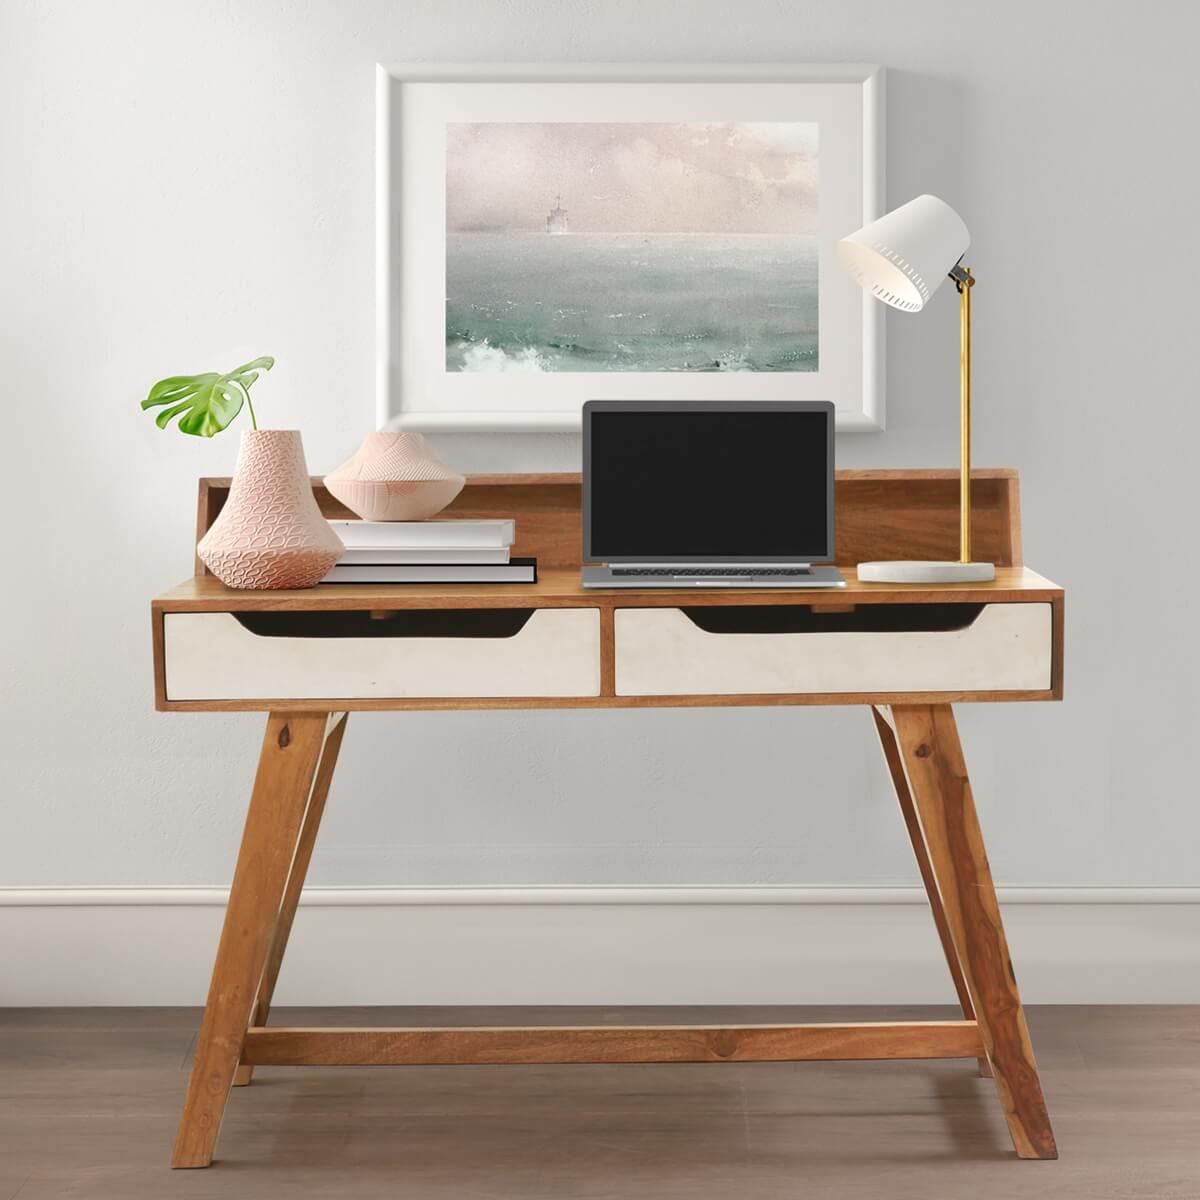 Solid Wood Scandinavian Splayed Desks For Small Spaces With Storage